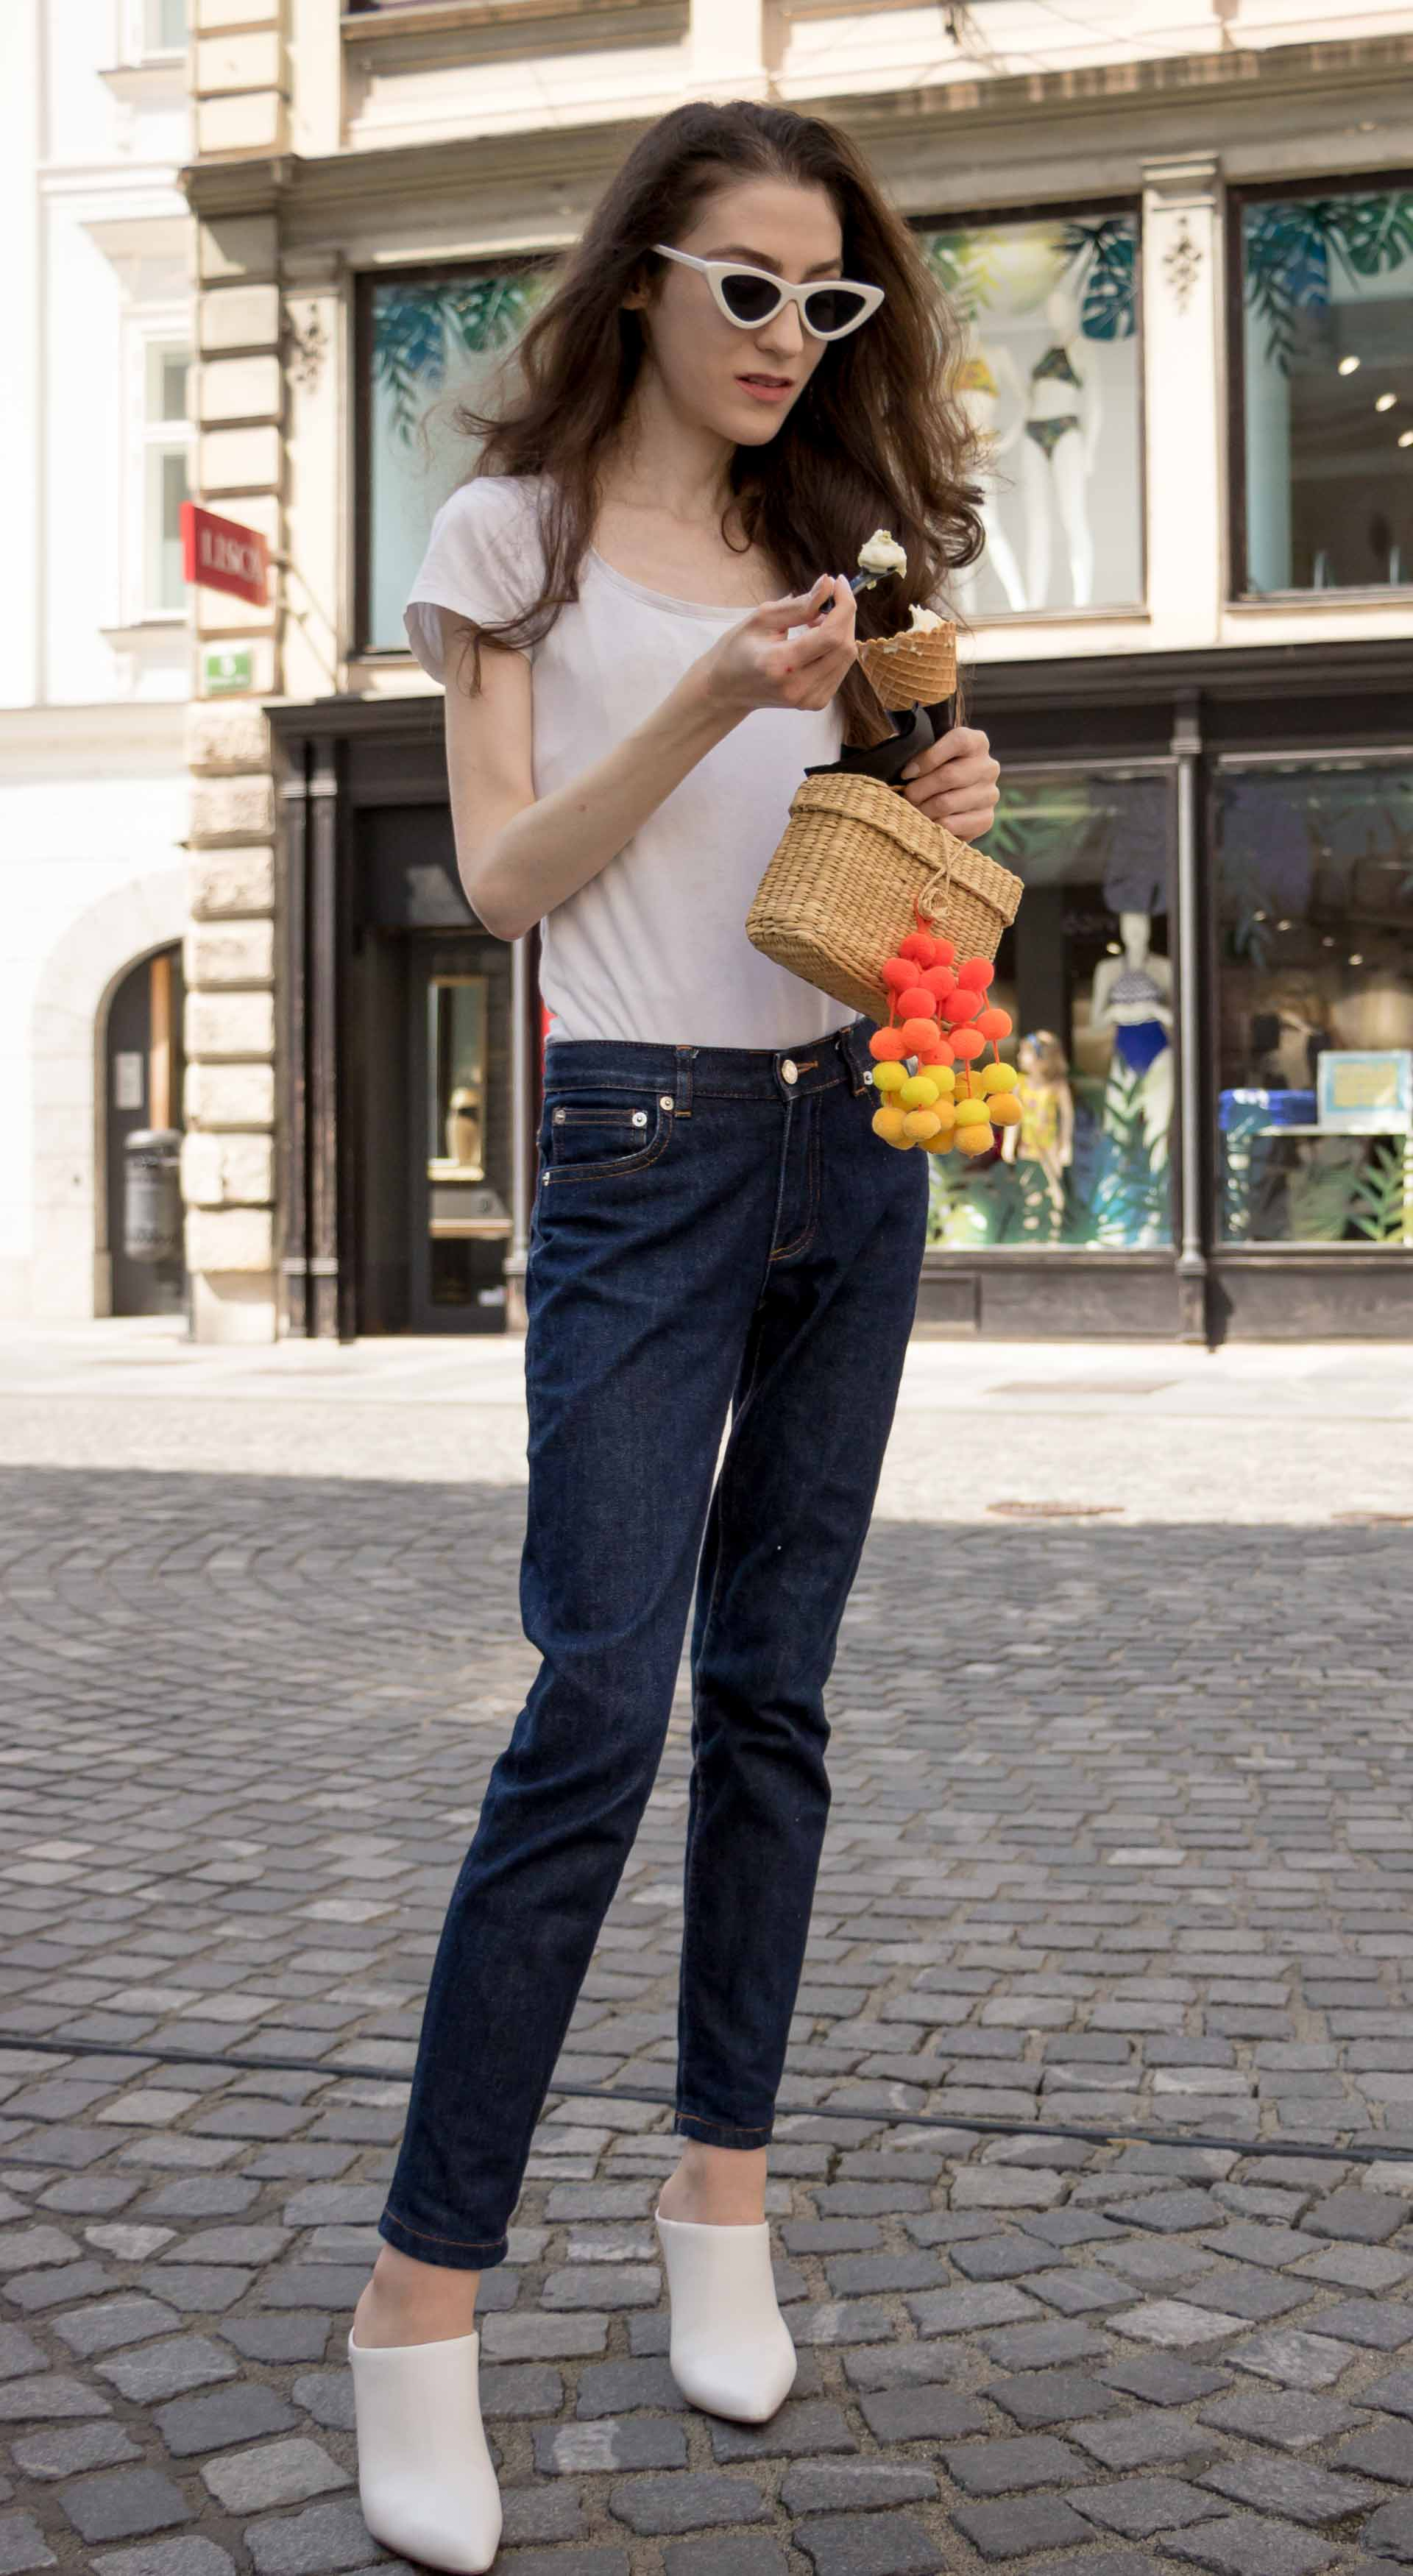 Veronika Lipar Fashion Editor of Brunette from Wall Street wearing summer basics dark blue tapered jeans from A.P.C., H&M white T-shirt, Nannacay basket bag, white mules and Adam Selman x Le Specs white cat eye Lolita sunglasses eating ice cream